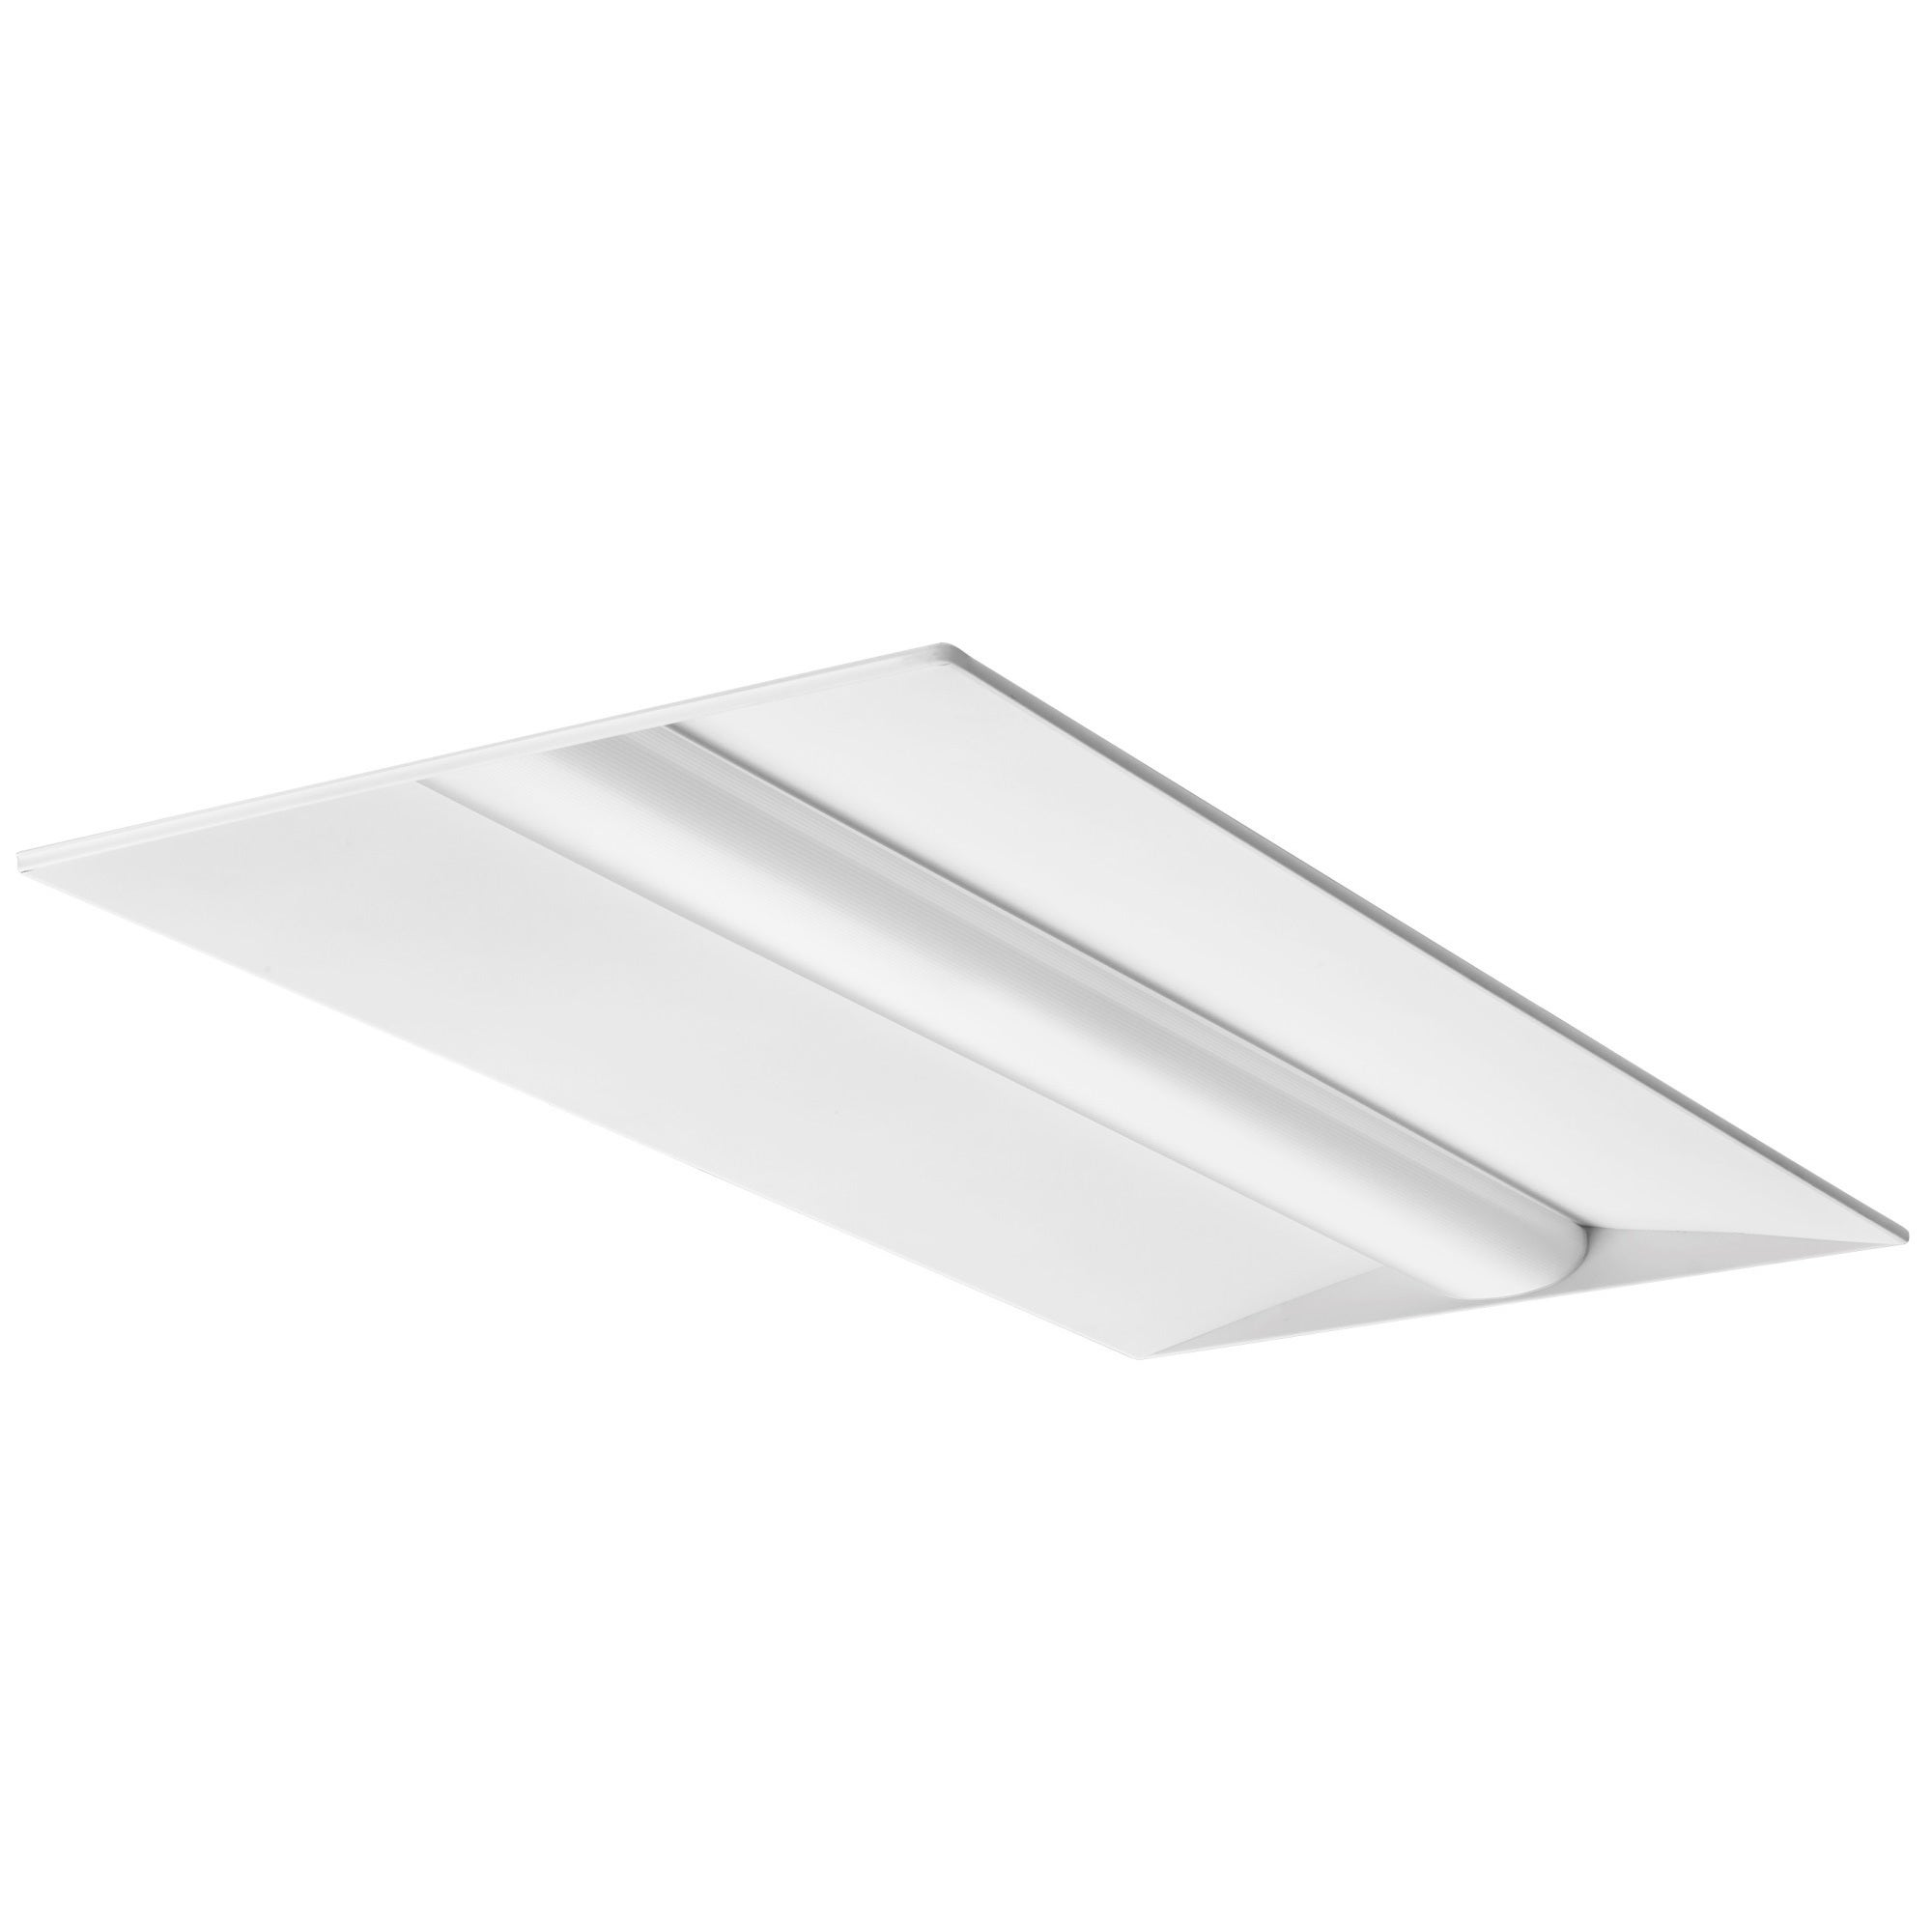 Image of: Shop Lithonia Lighting 2blt4 40l Adp Lp840 White Metal 4000 Lumen 4000k Best In Value Low Profile Recessed Led Luminaire Overstock 13262867